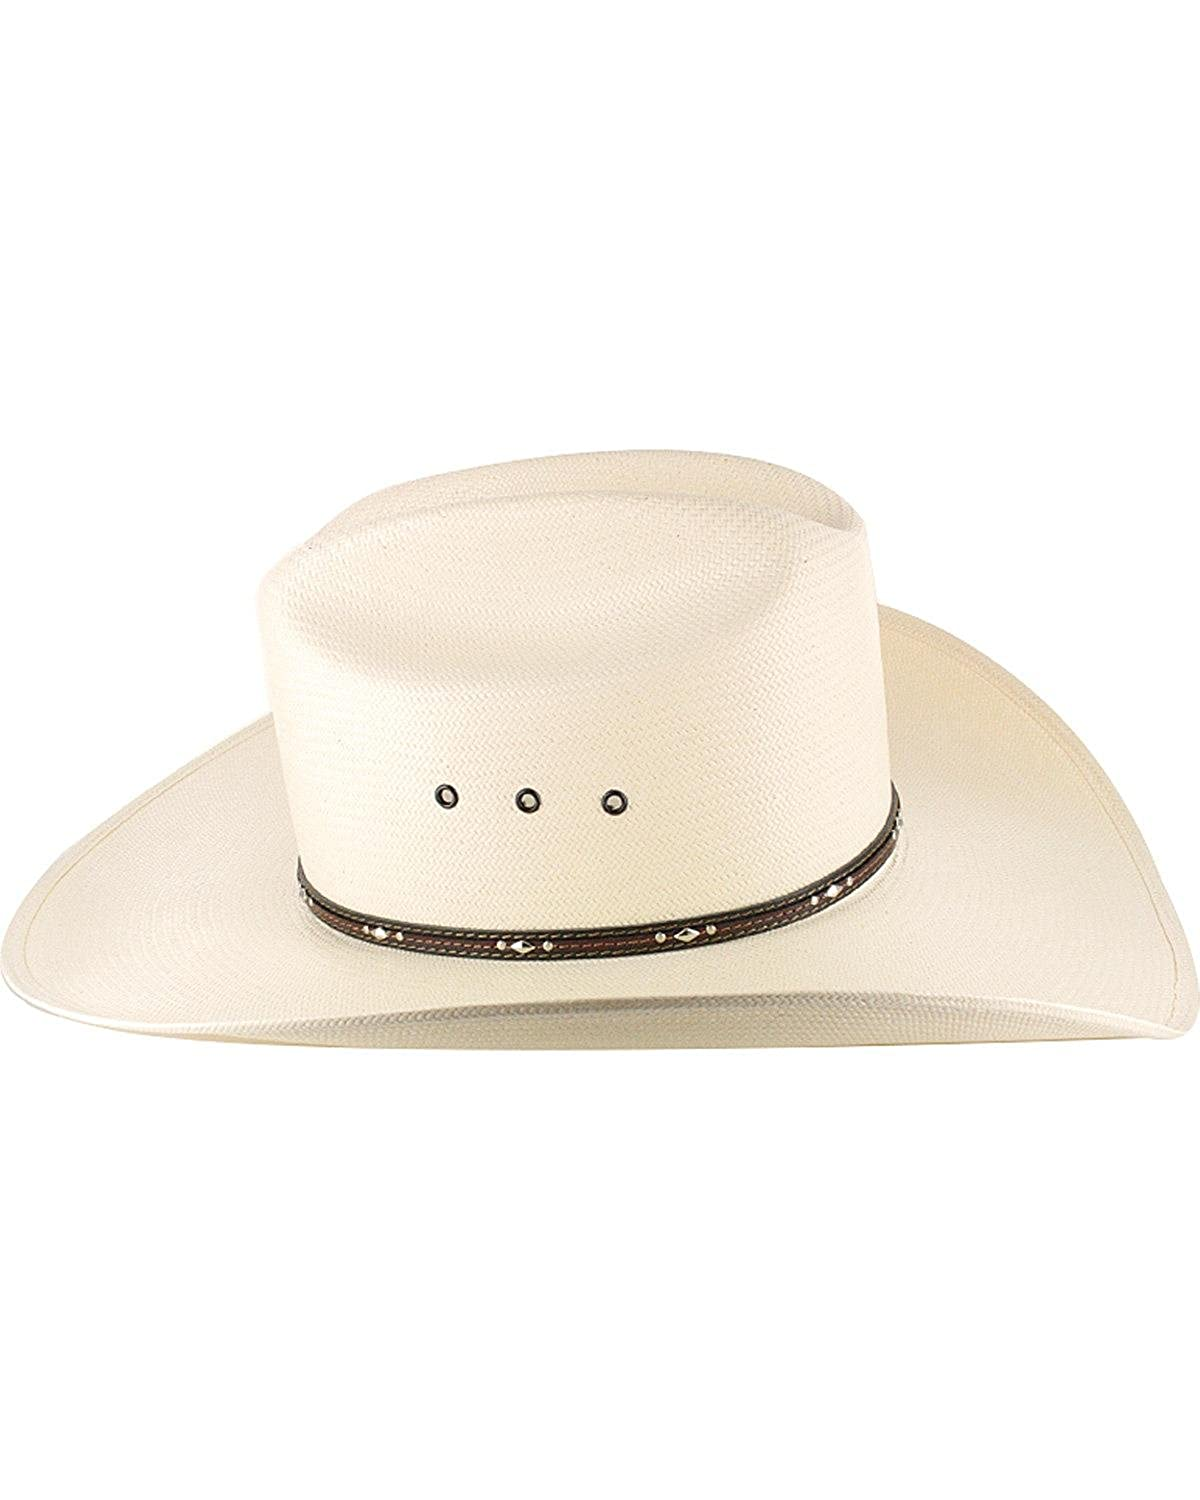 d1d0b2a4ca0 Resistol Men s George Strait Kingman 10X Straw Cowboy Hat - Rskngk-304281  at Amazon Men s Clothing store